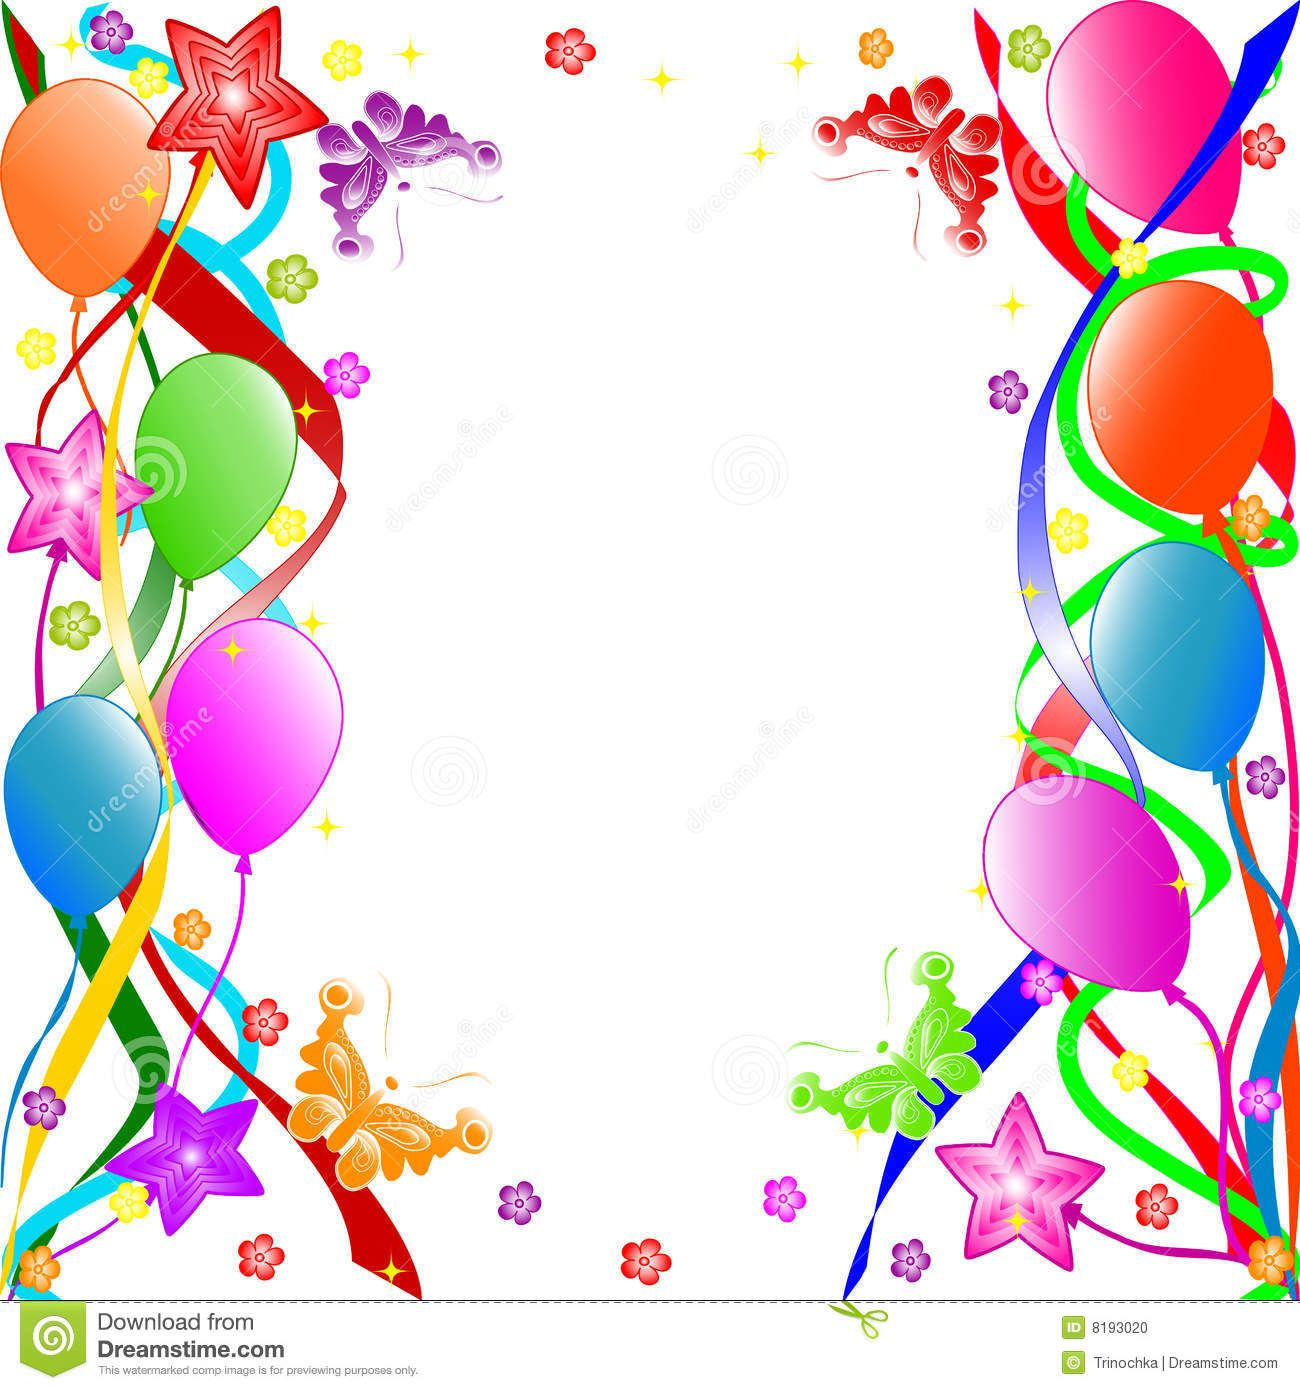 Birthday Backgrounds Free Eps Psd Jepg Png Format Birthday